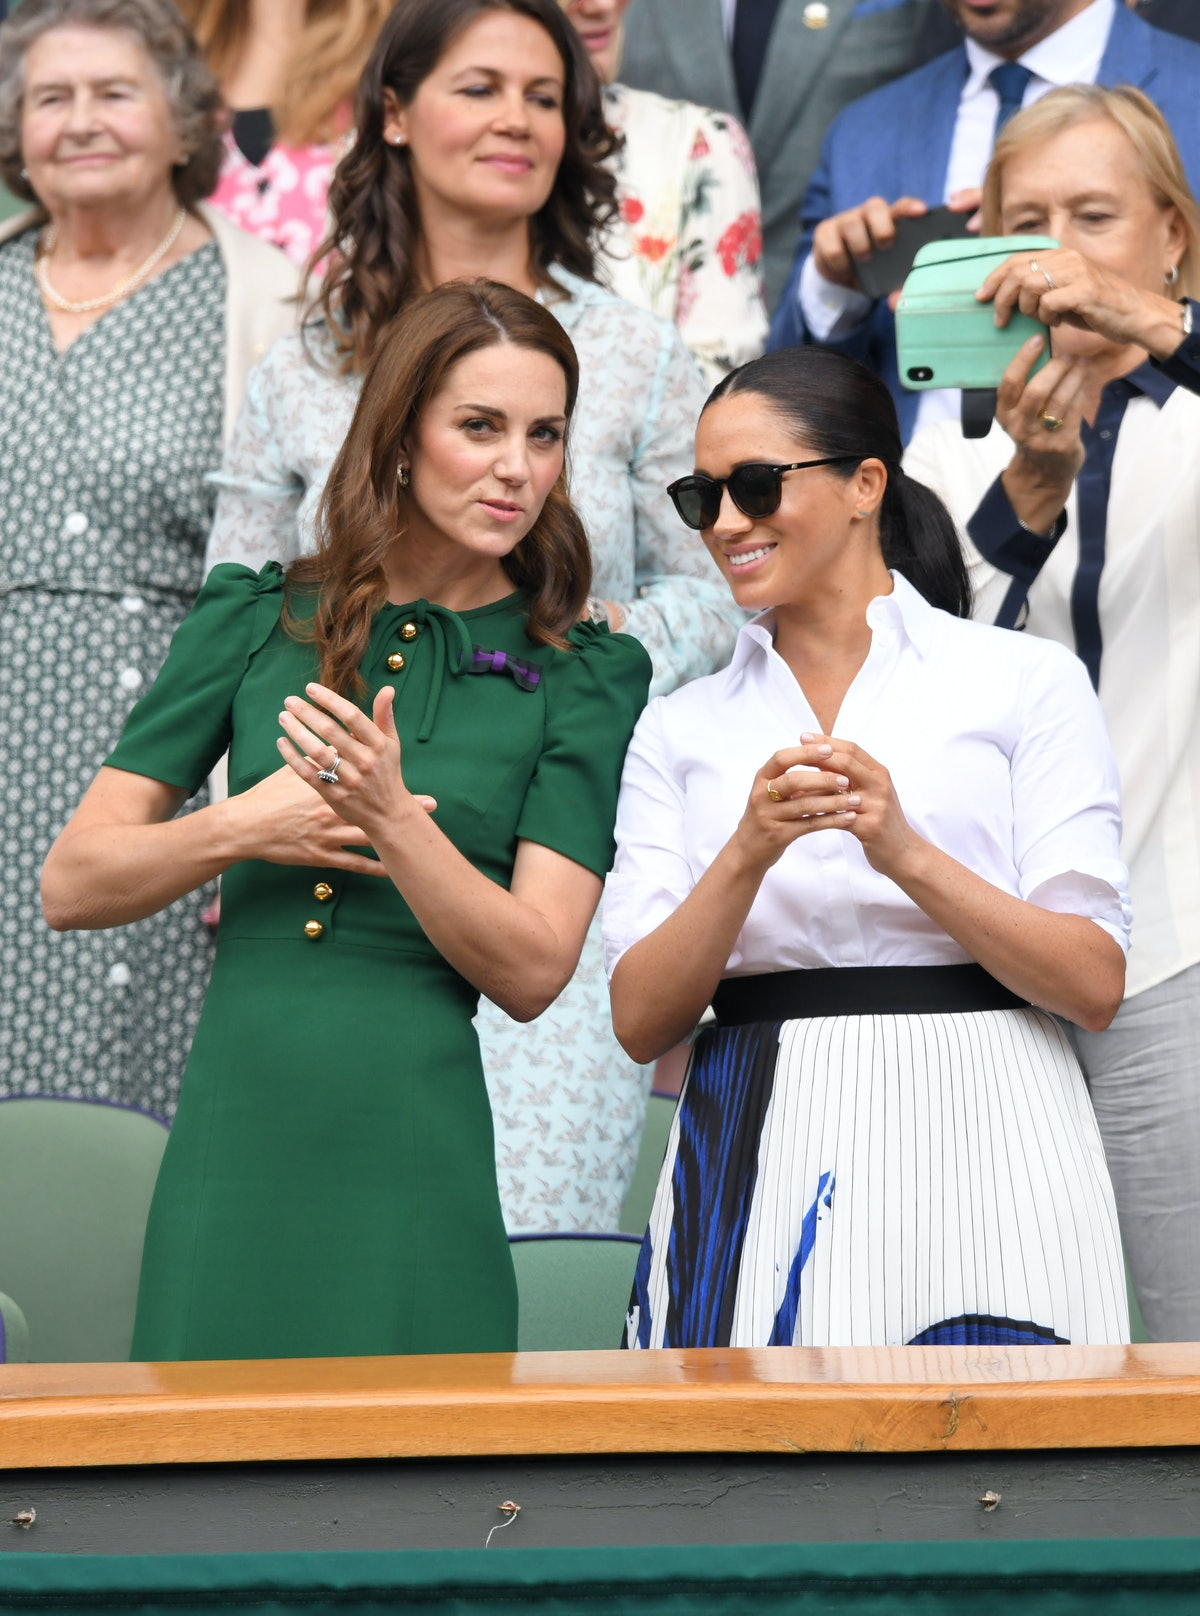 LONDON, ENGLAND - JULY 13: Catherine, Duchess of Cambridge and Meghan, Duchess of Sussex in the Roya...